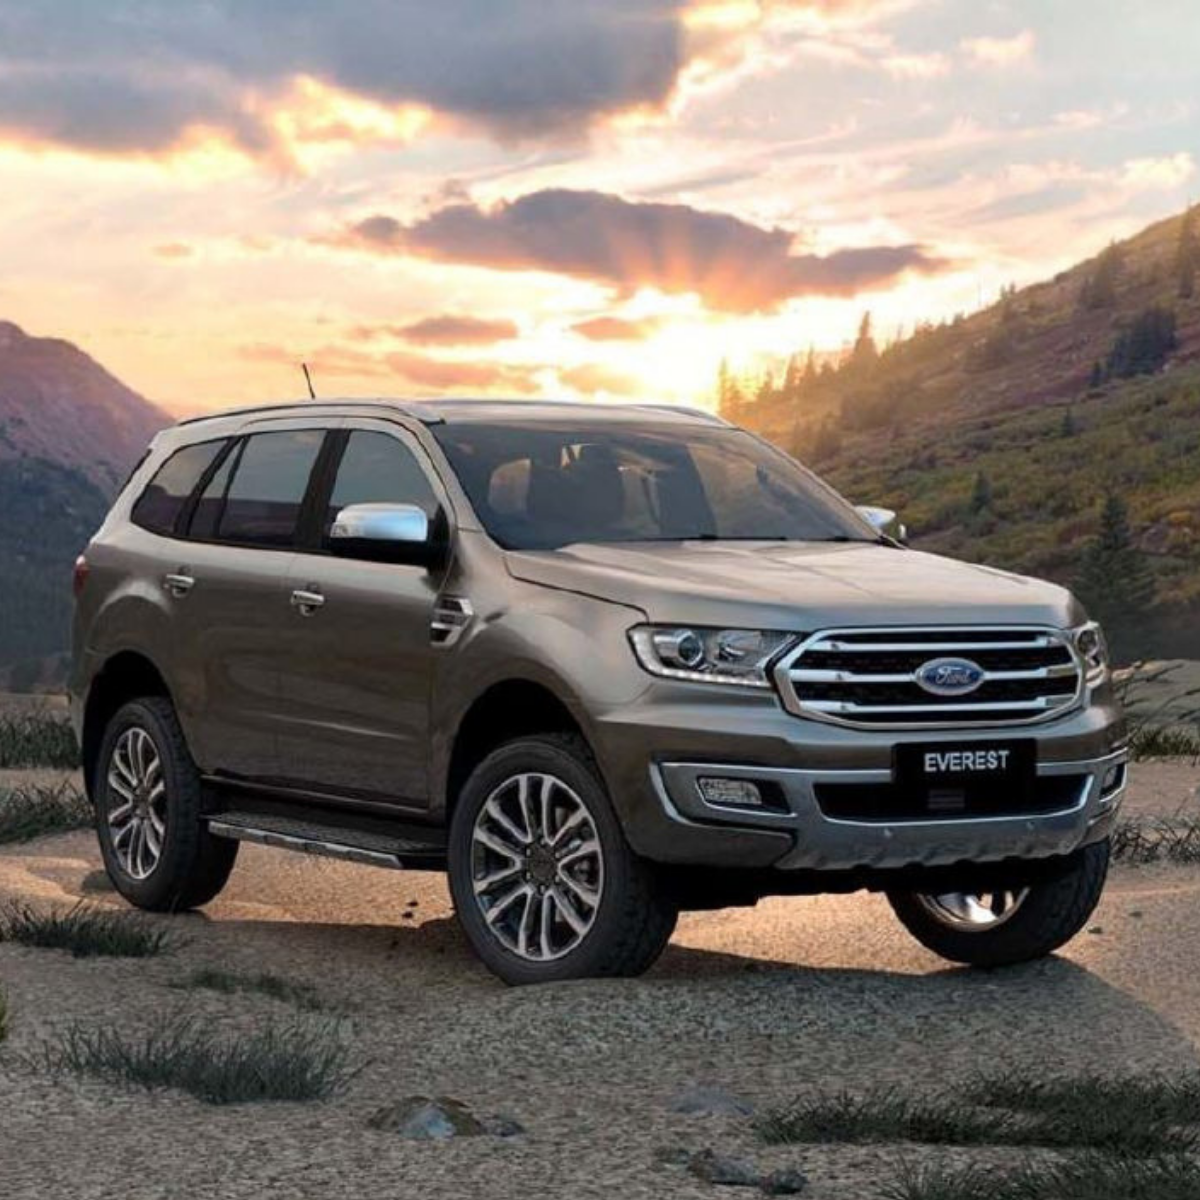 Ford Endeavour Facelift To Be Launching Soon in India | Cars